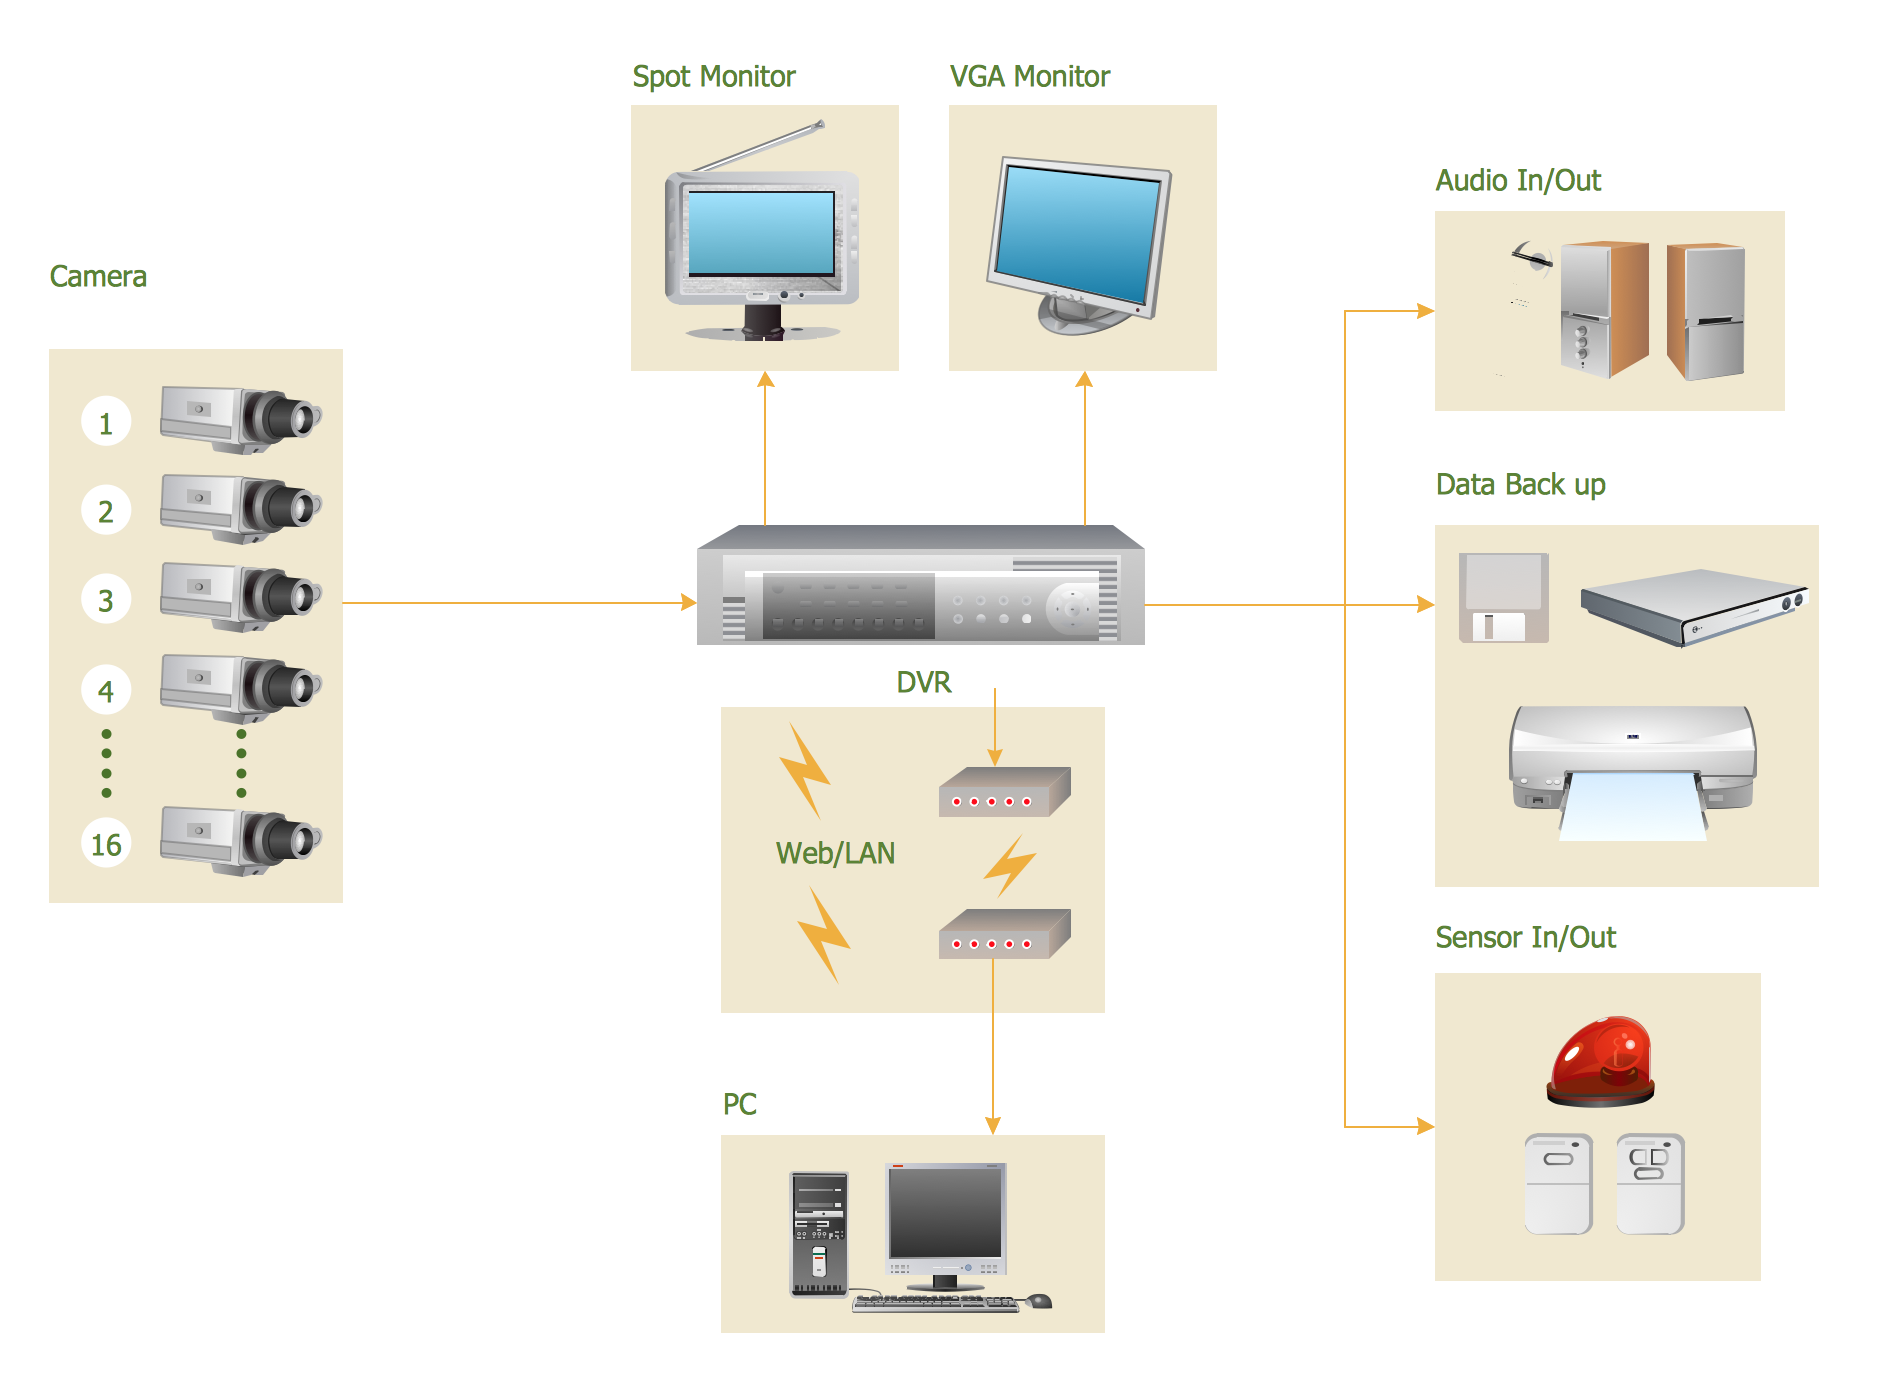 basic cctv system diagram  cctv network diagram example   cctv    cctv surveillance system diagram